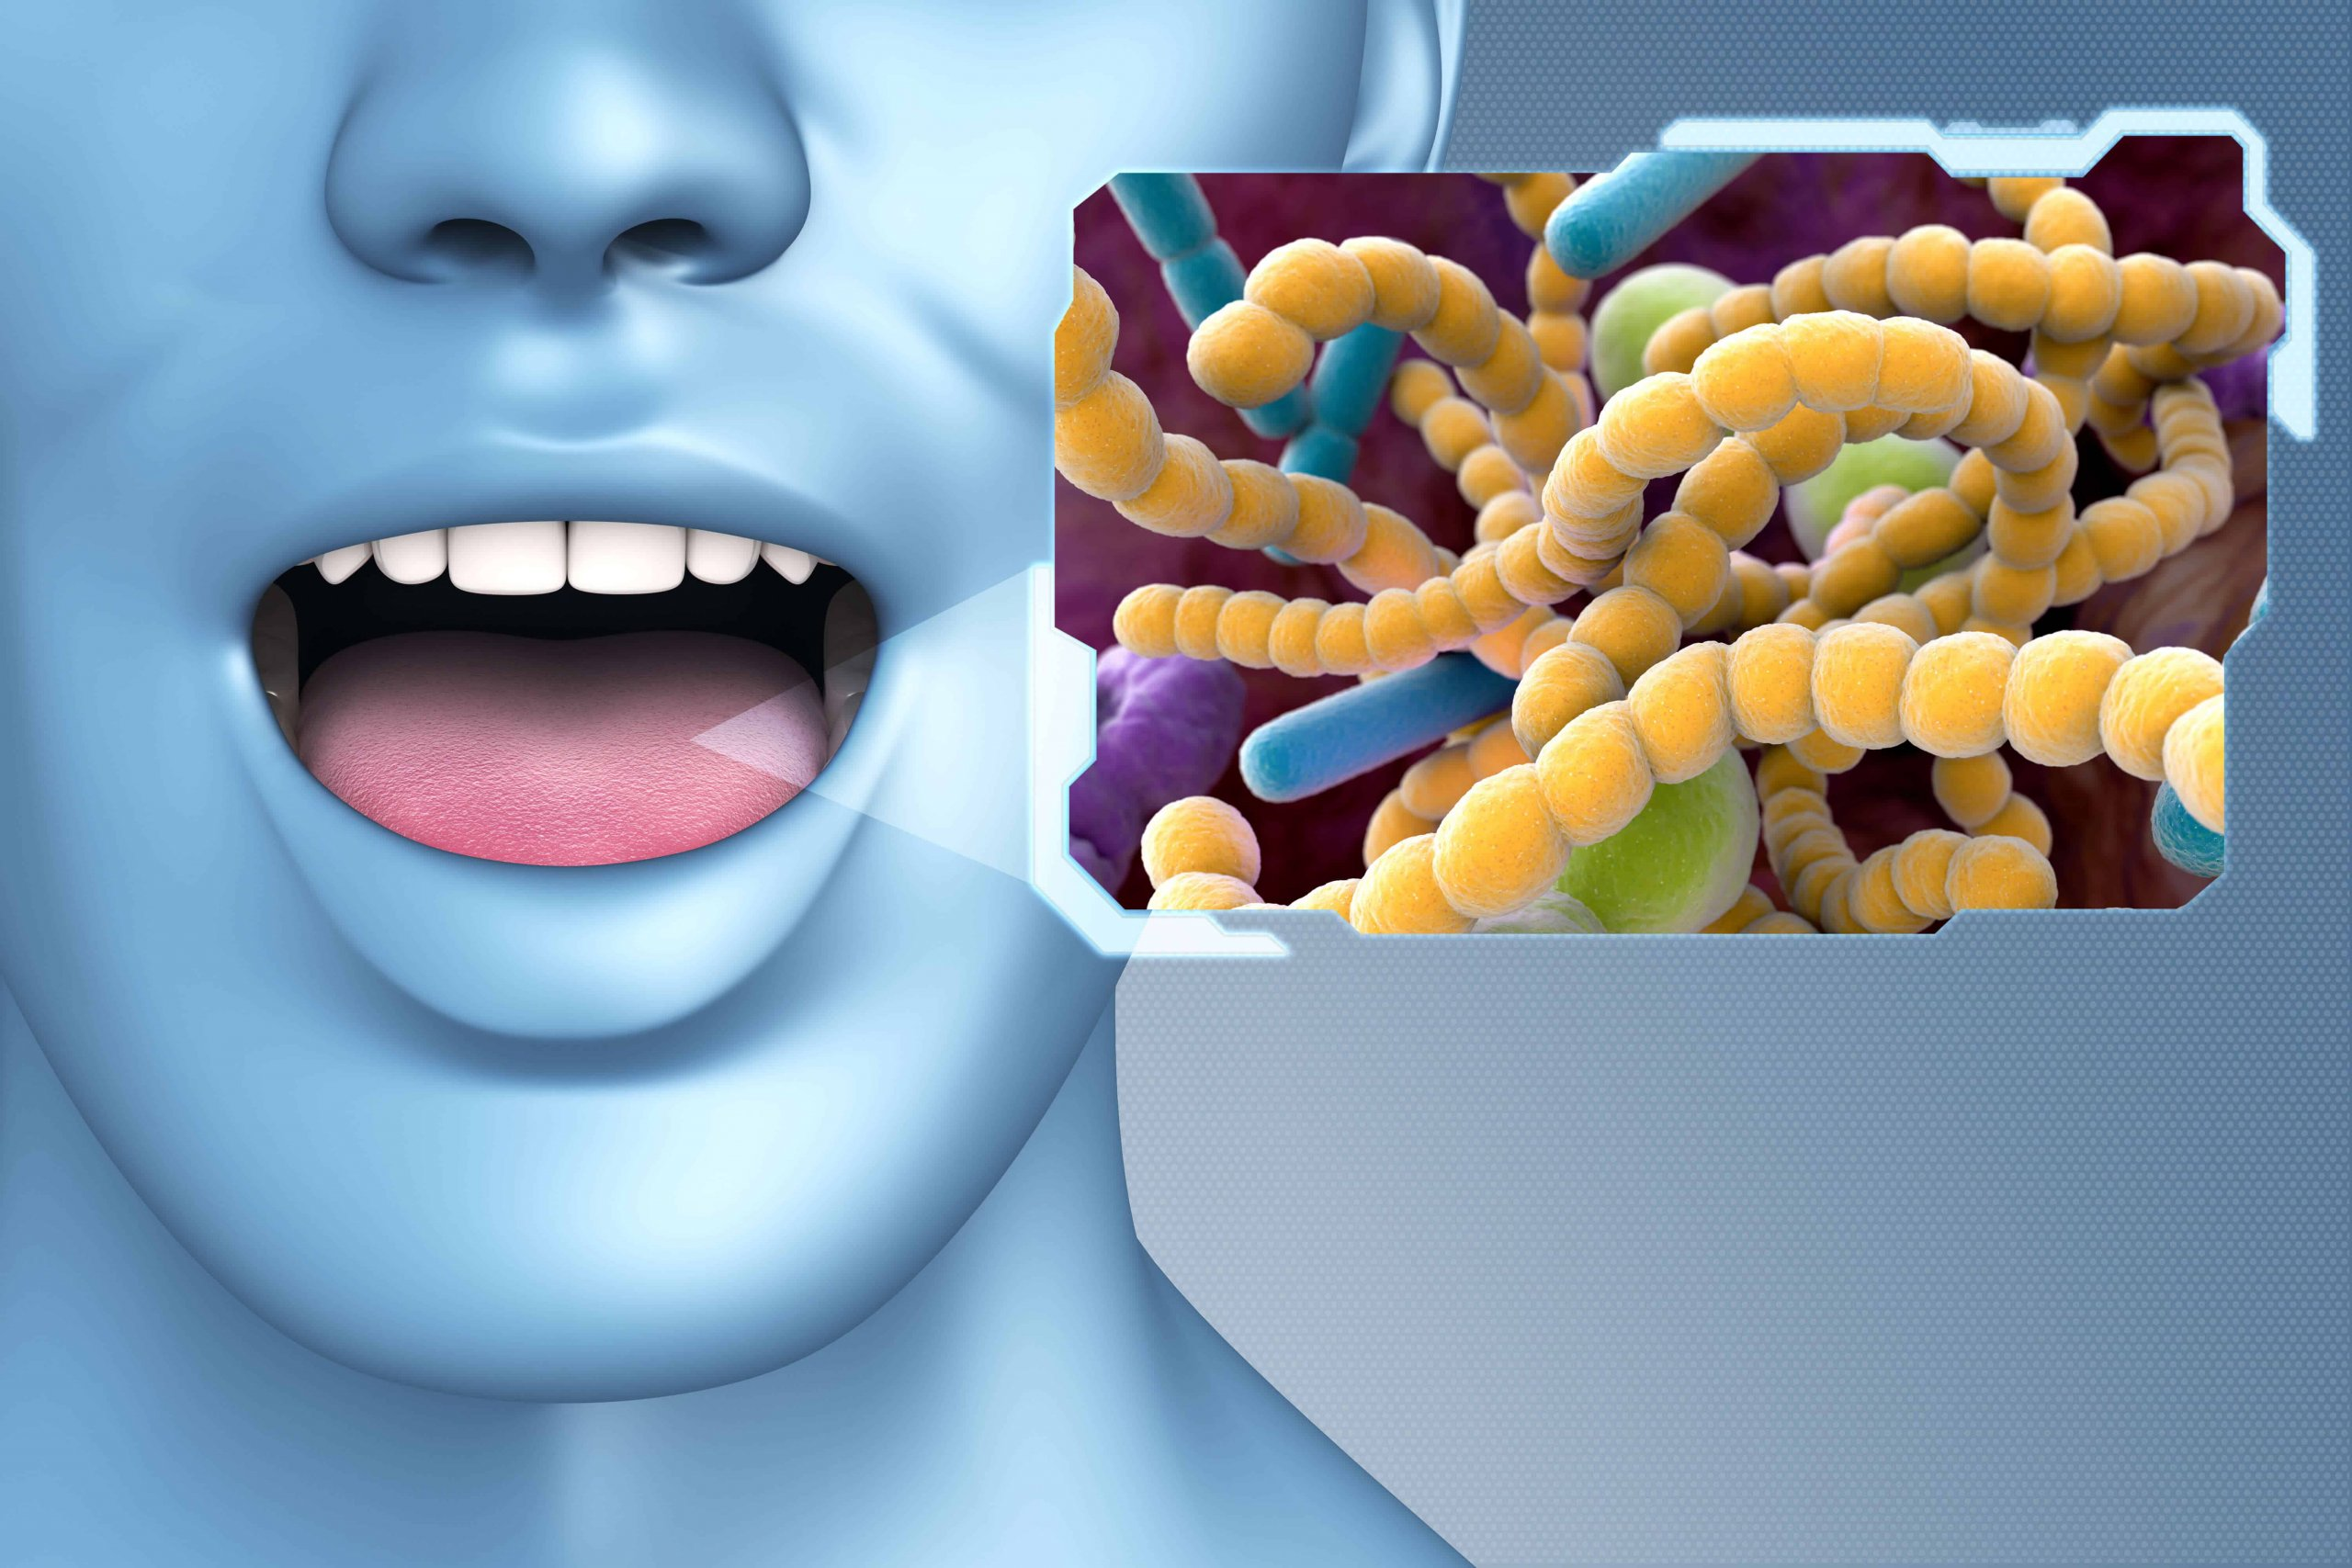 Oral Health 101: What is the Biofilm?